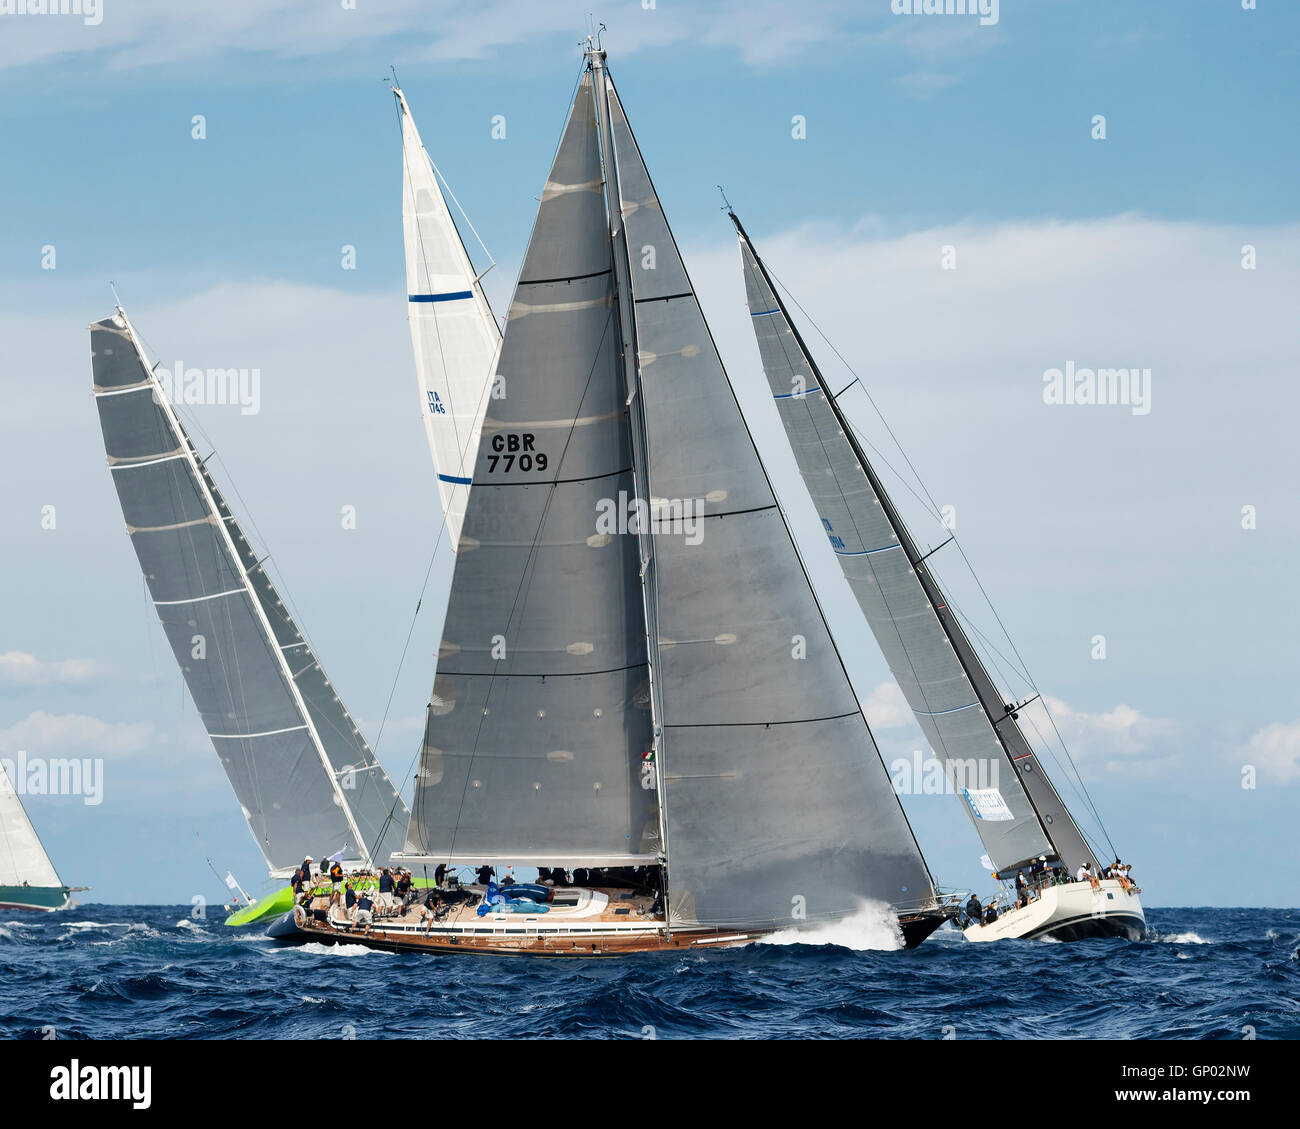 PORTO CERVO - 8 SEPTEMBER: teams competing on Maxi Yacht Rolex Cup sail boat race in Sardinia, on September 8 2015 - Stock Image